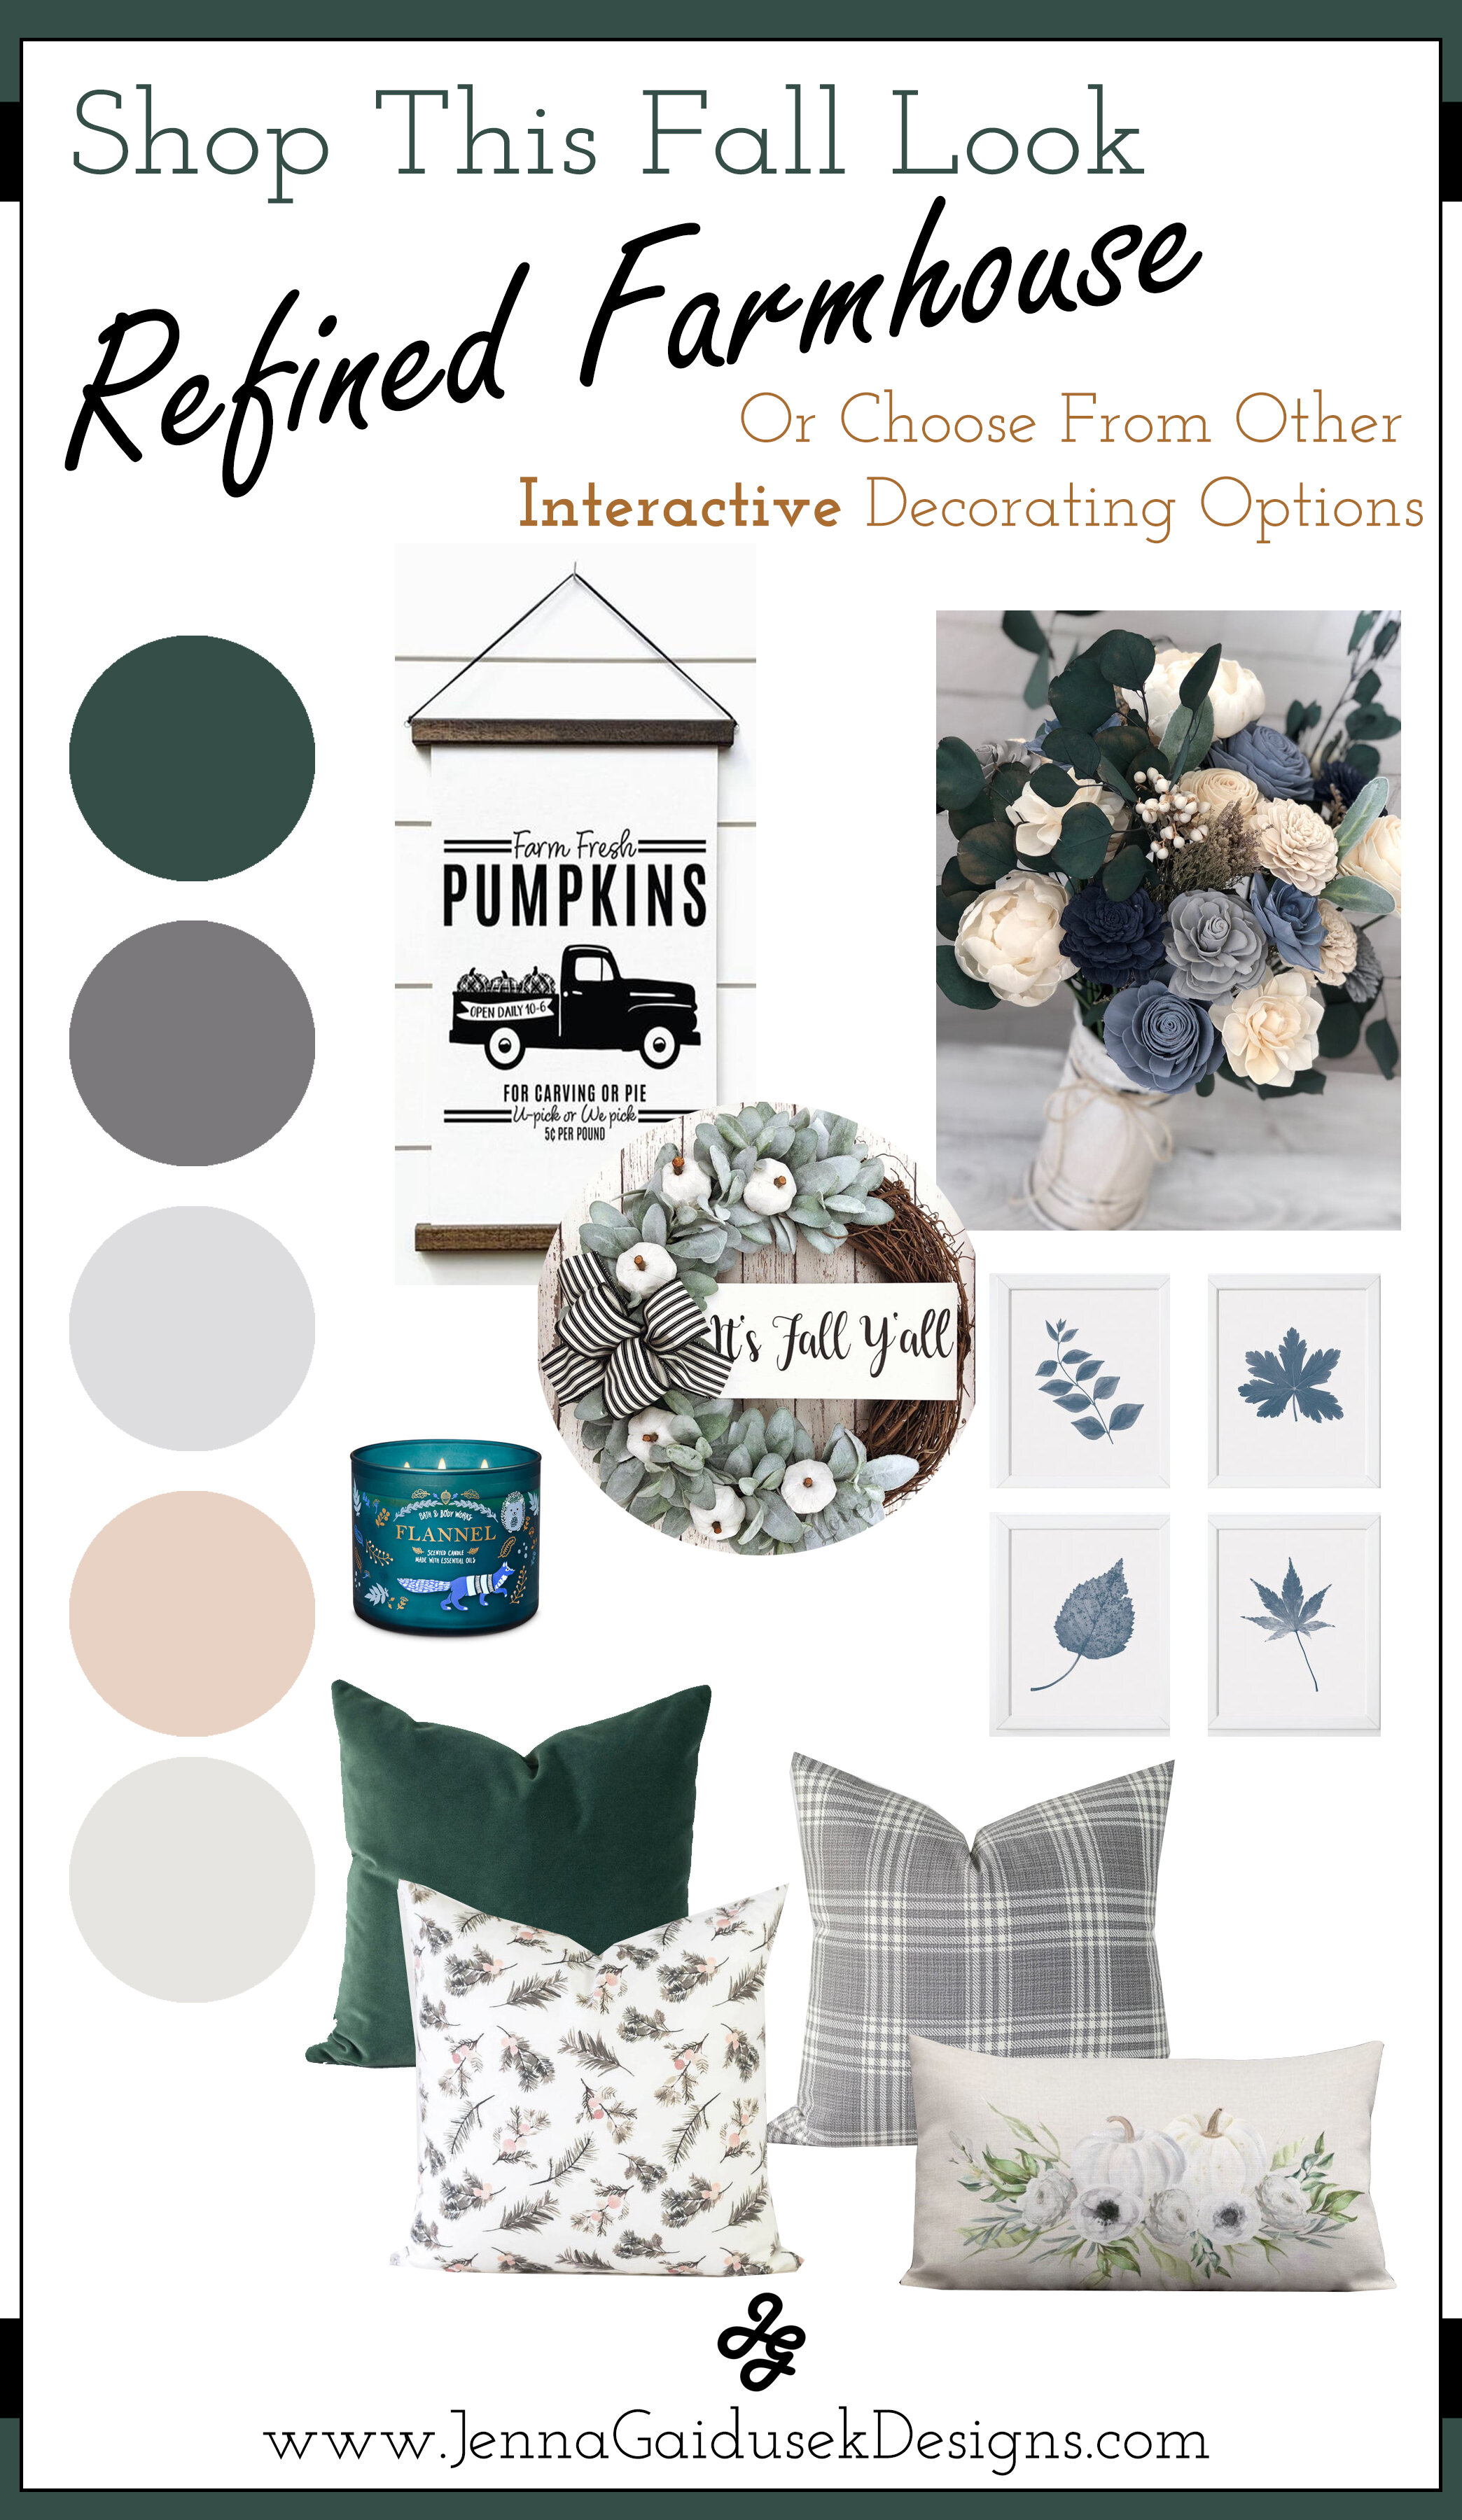 Fresh Fall Get your free fall decorating style guide! Shop the sophisticated refined farmhouse home decor based on your fall color scheme for this year. Add new pillows, fall wall decor, wood signs and more. All expertly designed by eDesigner, Jenna Gaidusek and sourced from Etsy small businesses. Get ready for entertaining your family and friends this Thanksgiving and Christmas season with these fresh fall decor styles! #modernfarmhouse #falldecor #decorateforfall #fallstyle